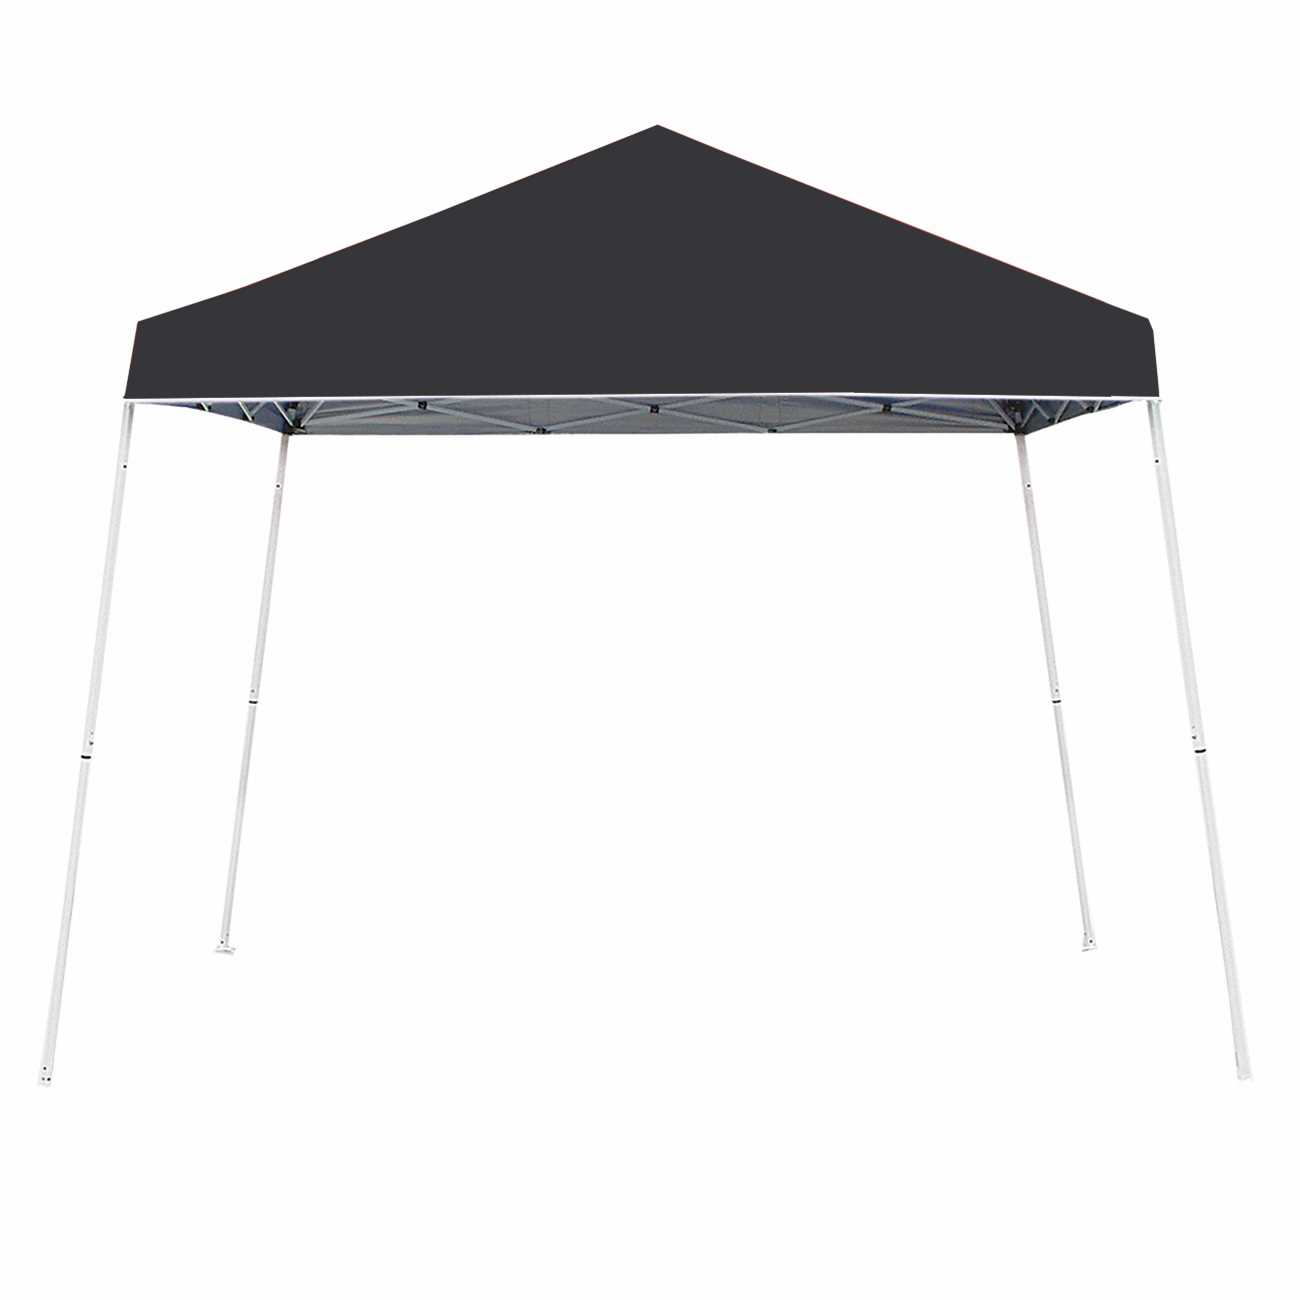 Z-Shade 10' x 10' Angled Leg Instant Shade Canopy Tent Portable Shelter, Black by Z-Shade